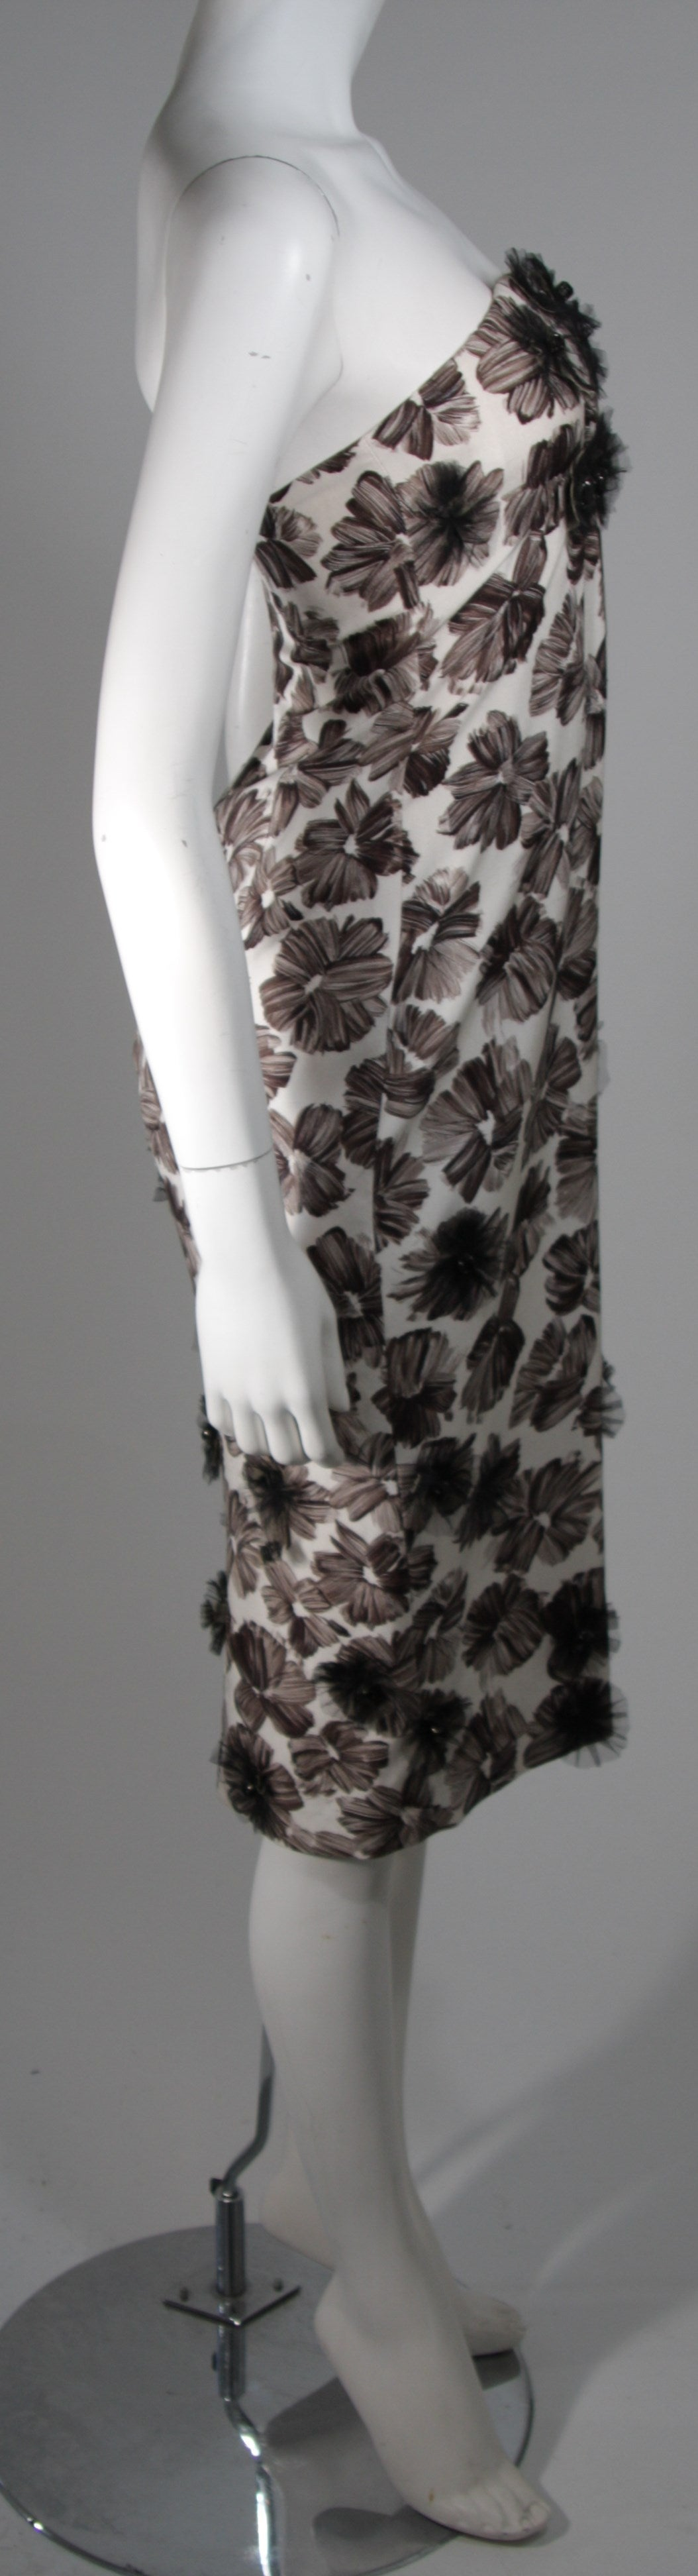 Women's GIAMBATTISTA VALLI White Strapless Floral Print Rhinestone Detail Dress Size 40 For Sale